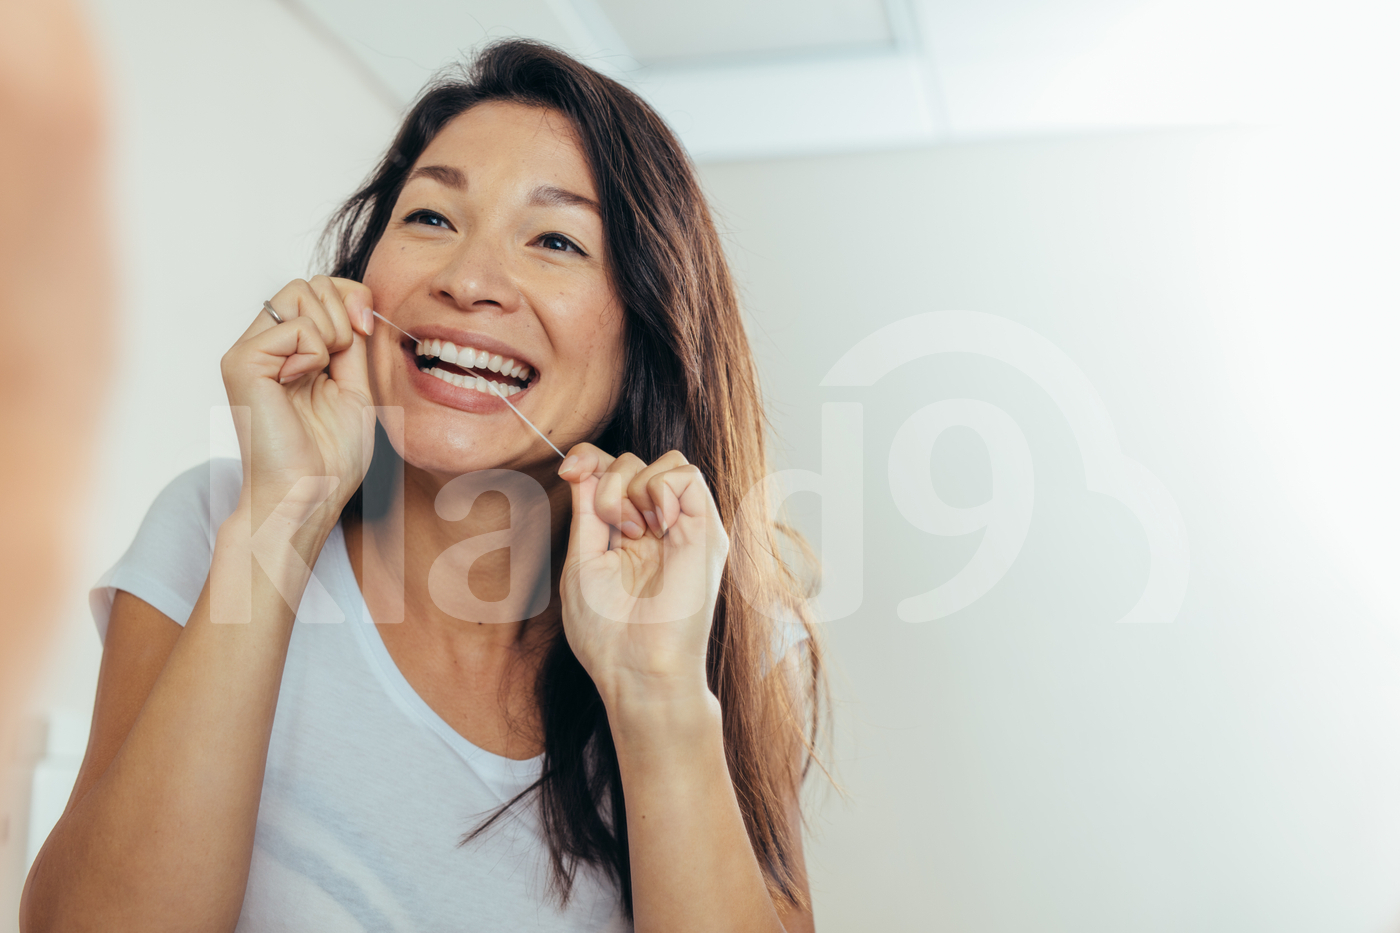 Reflection of woman using dental floss